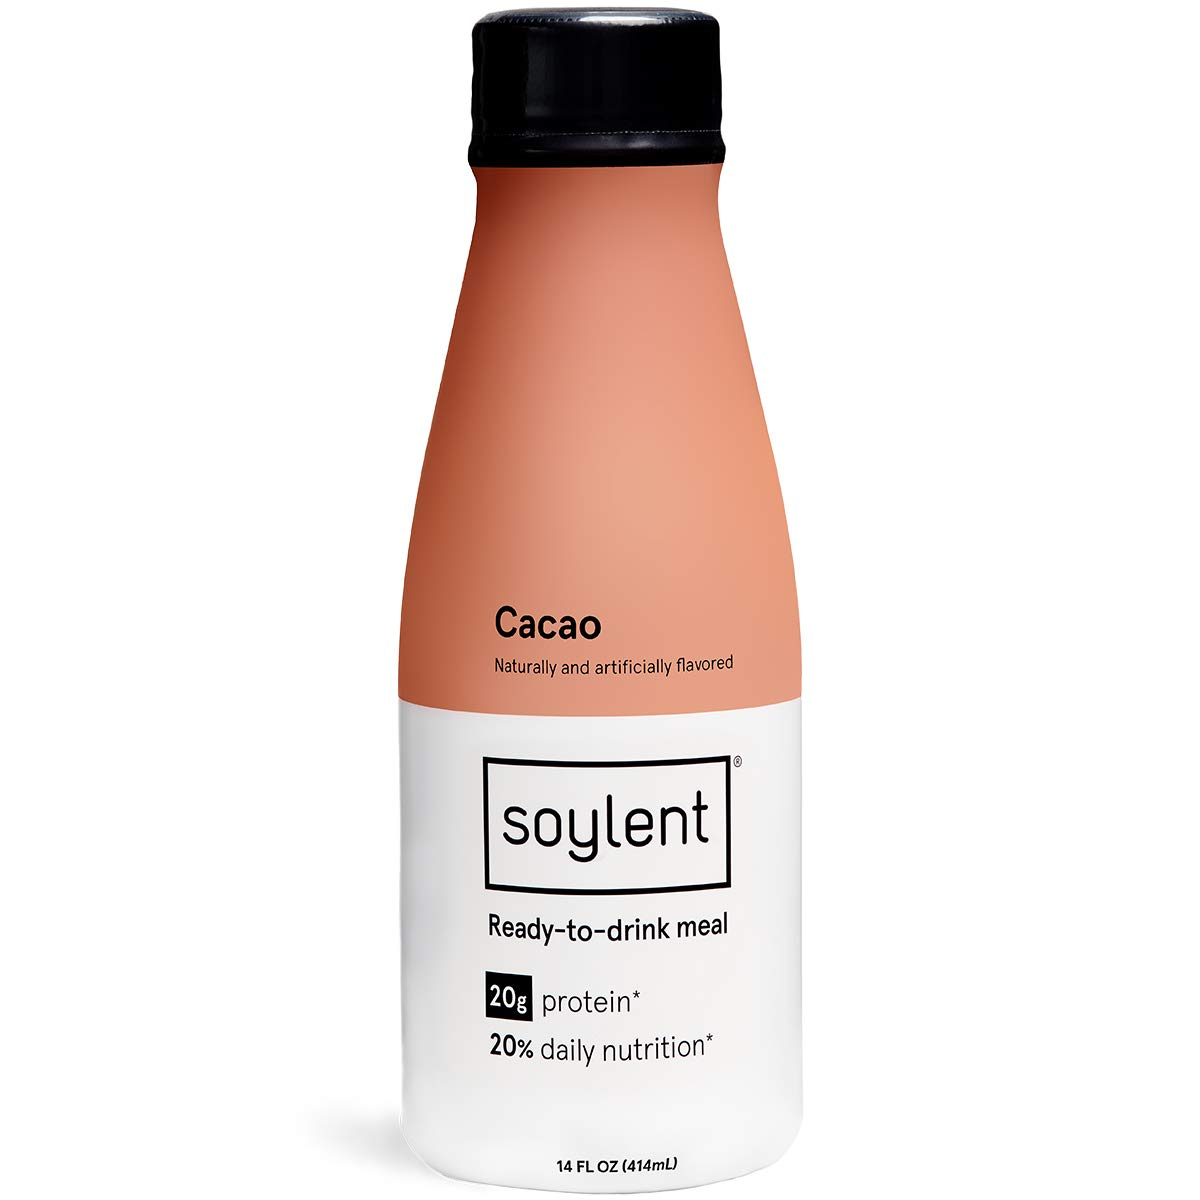 Soylent Meal Replacement Drink, Cacao, 14 oz Bottles, 12 Pack (Packaging May Vary)